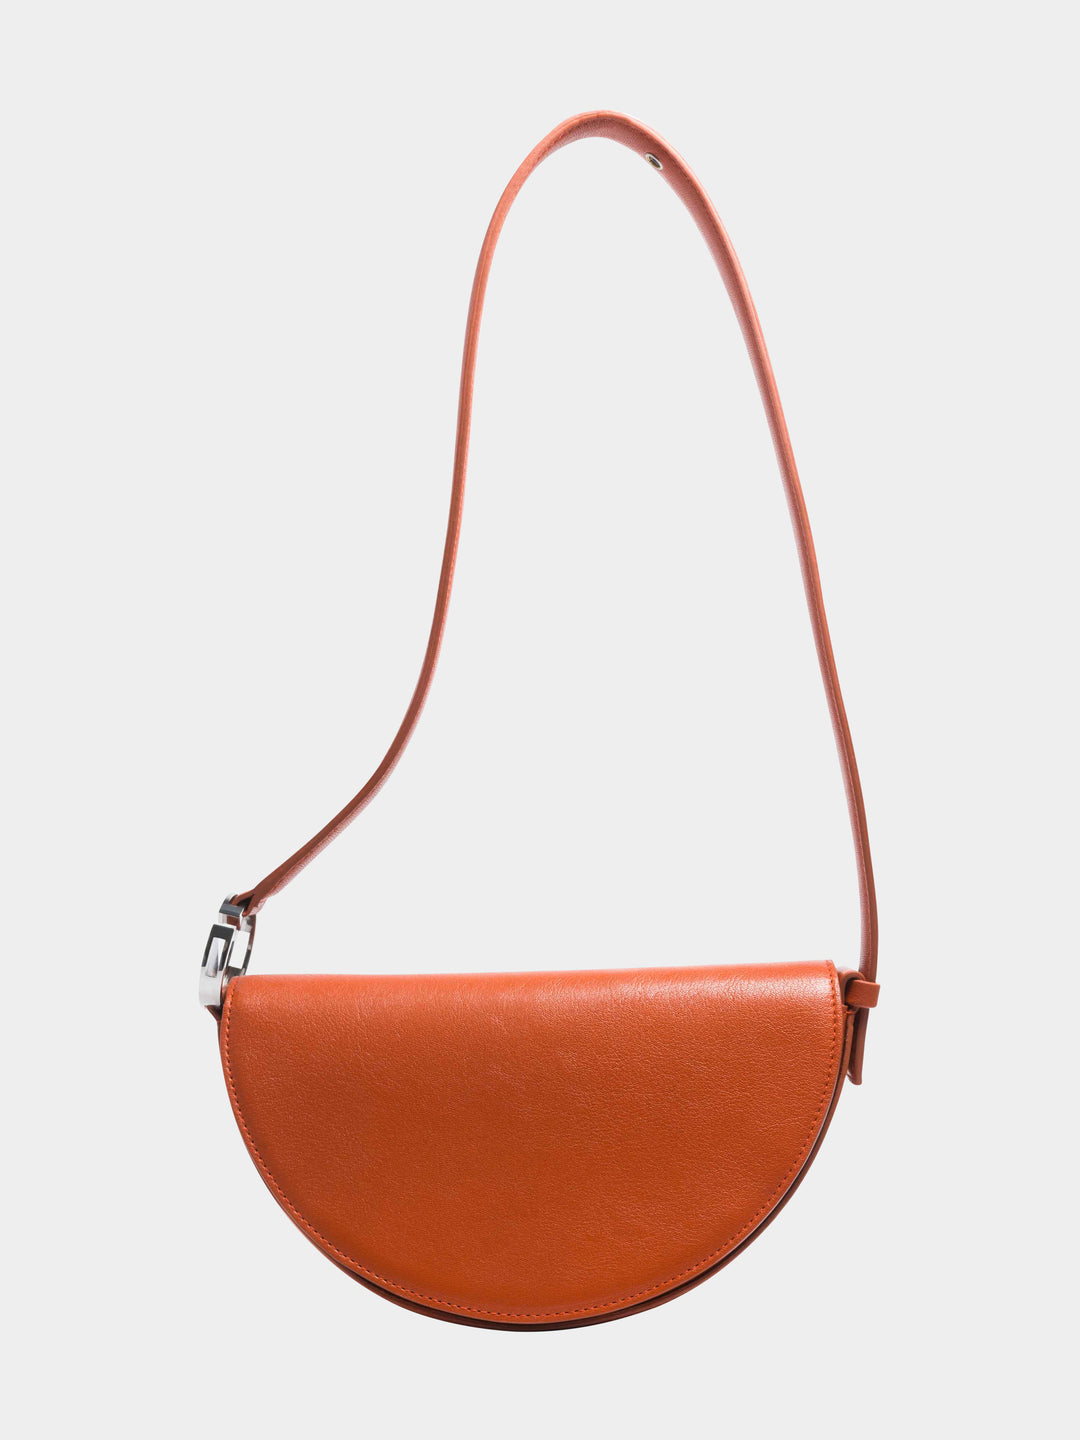 Dooz Leo Céleste leather handbag in color Rust